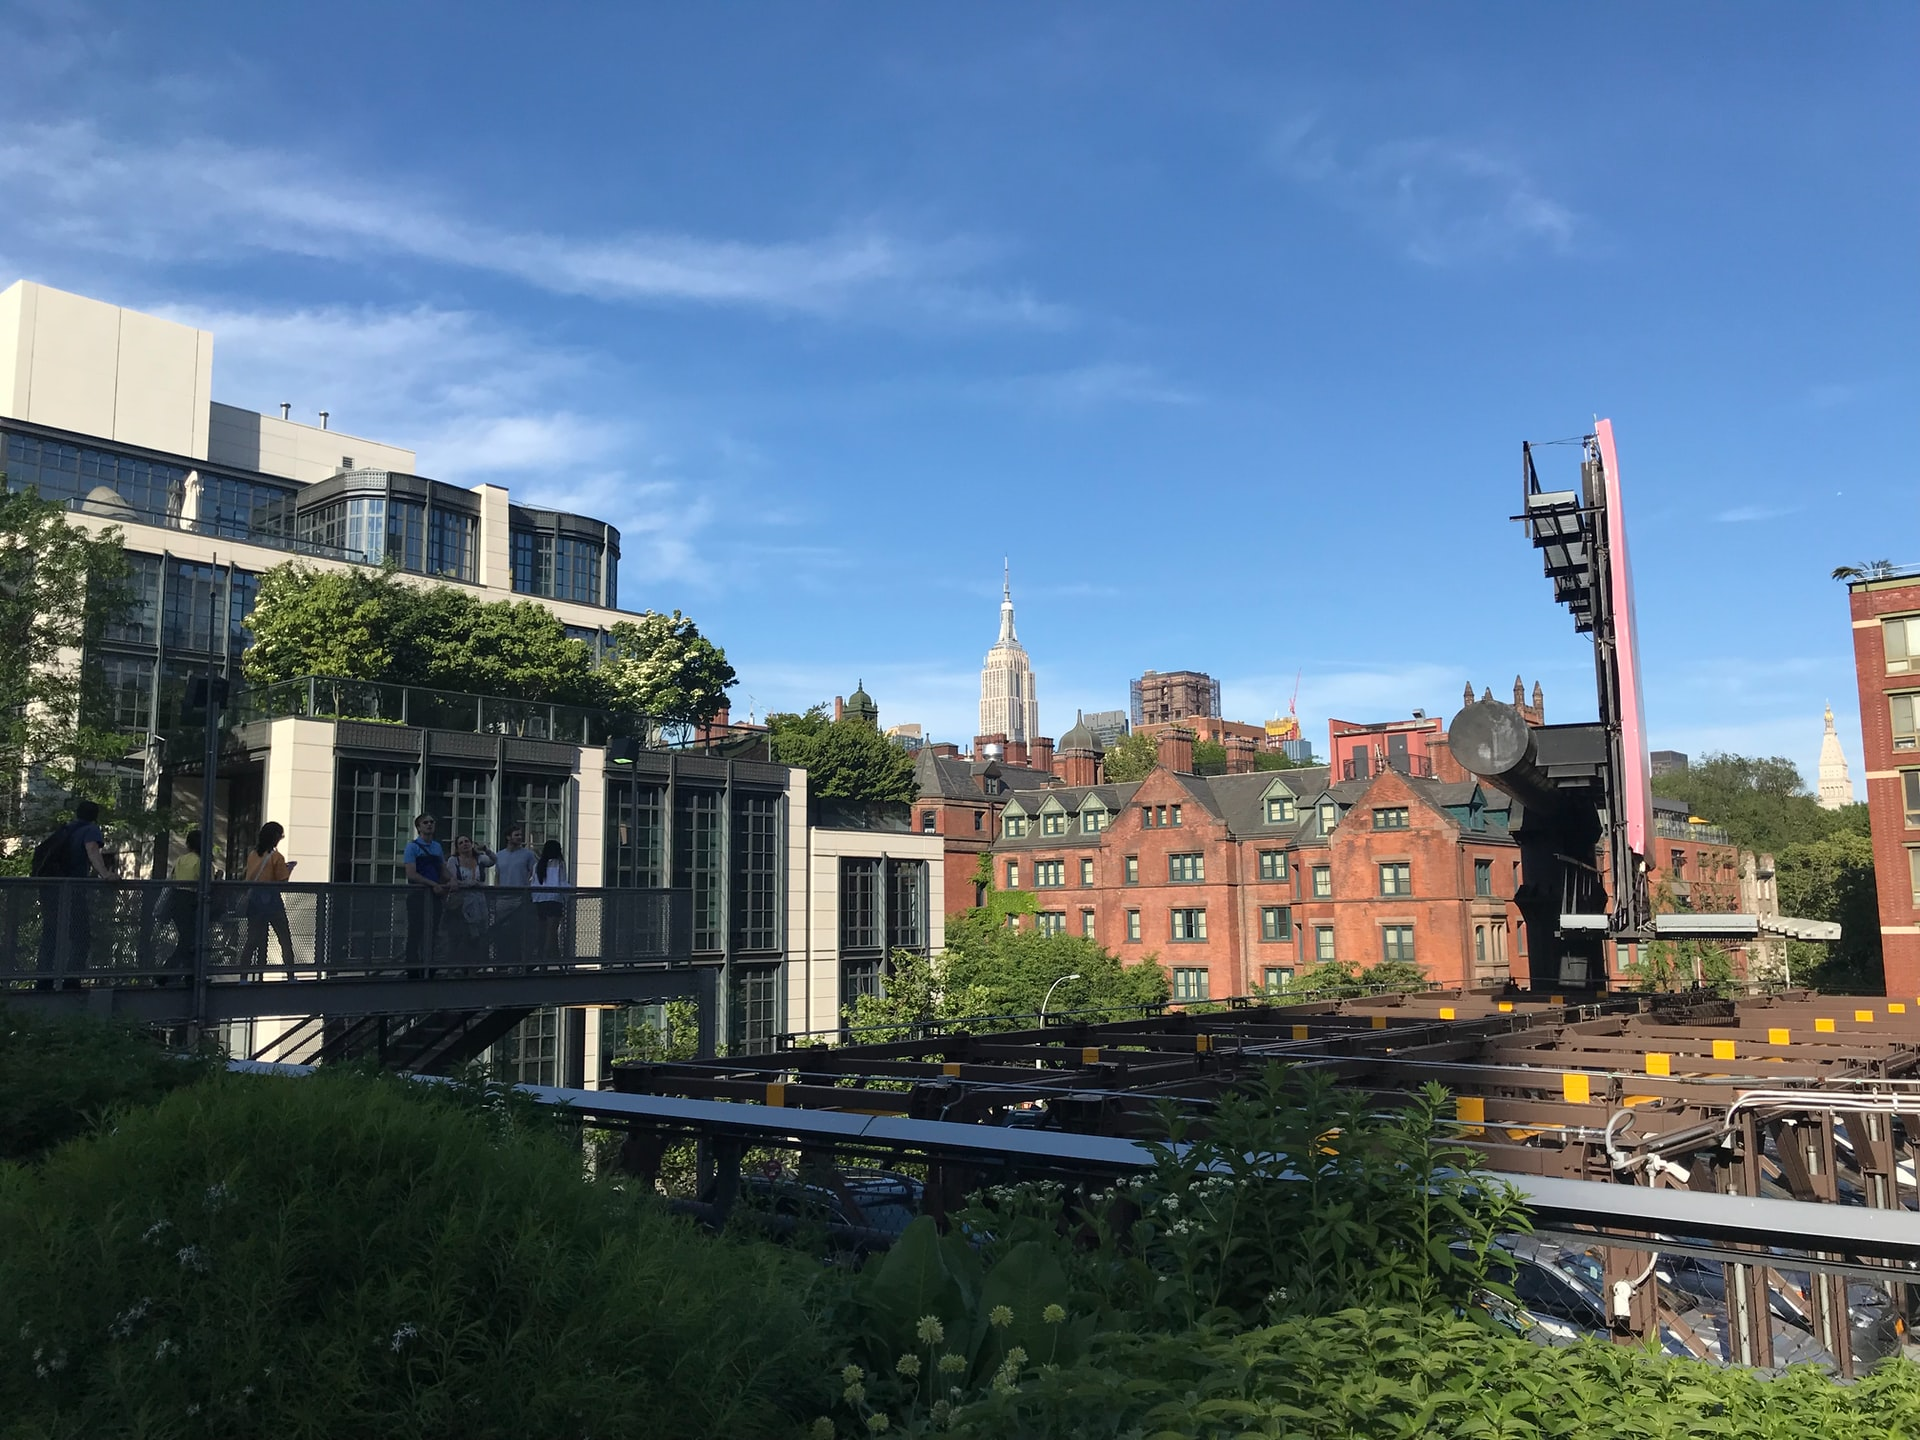 <p>Though Manhattan's High Line provides certain environmental benefits, it contributed to green gentrification and displaced low- and middle-income residents in the area. Photo by Jared Lisack/Unsplash</p>